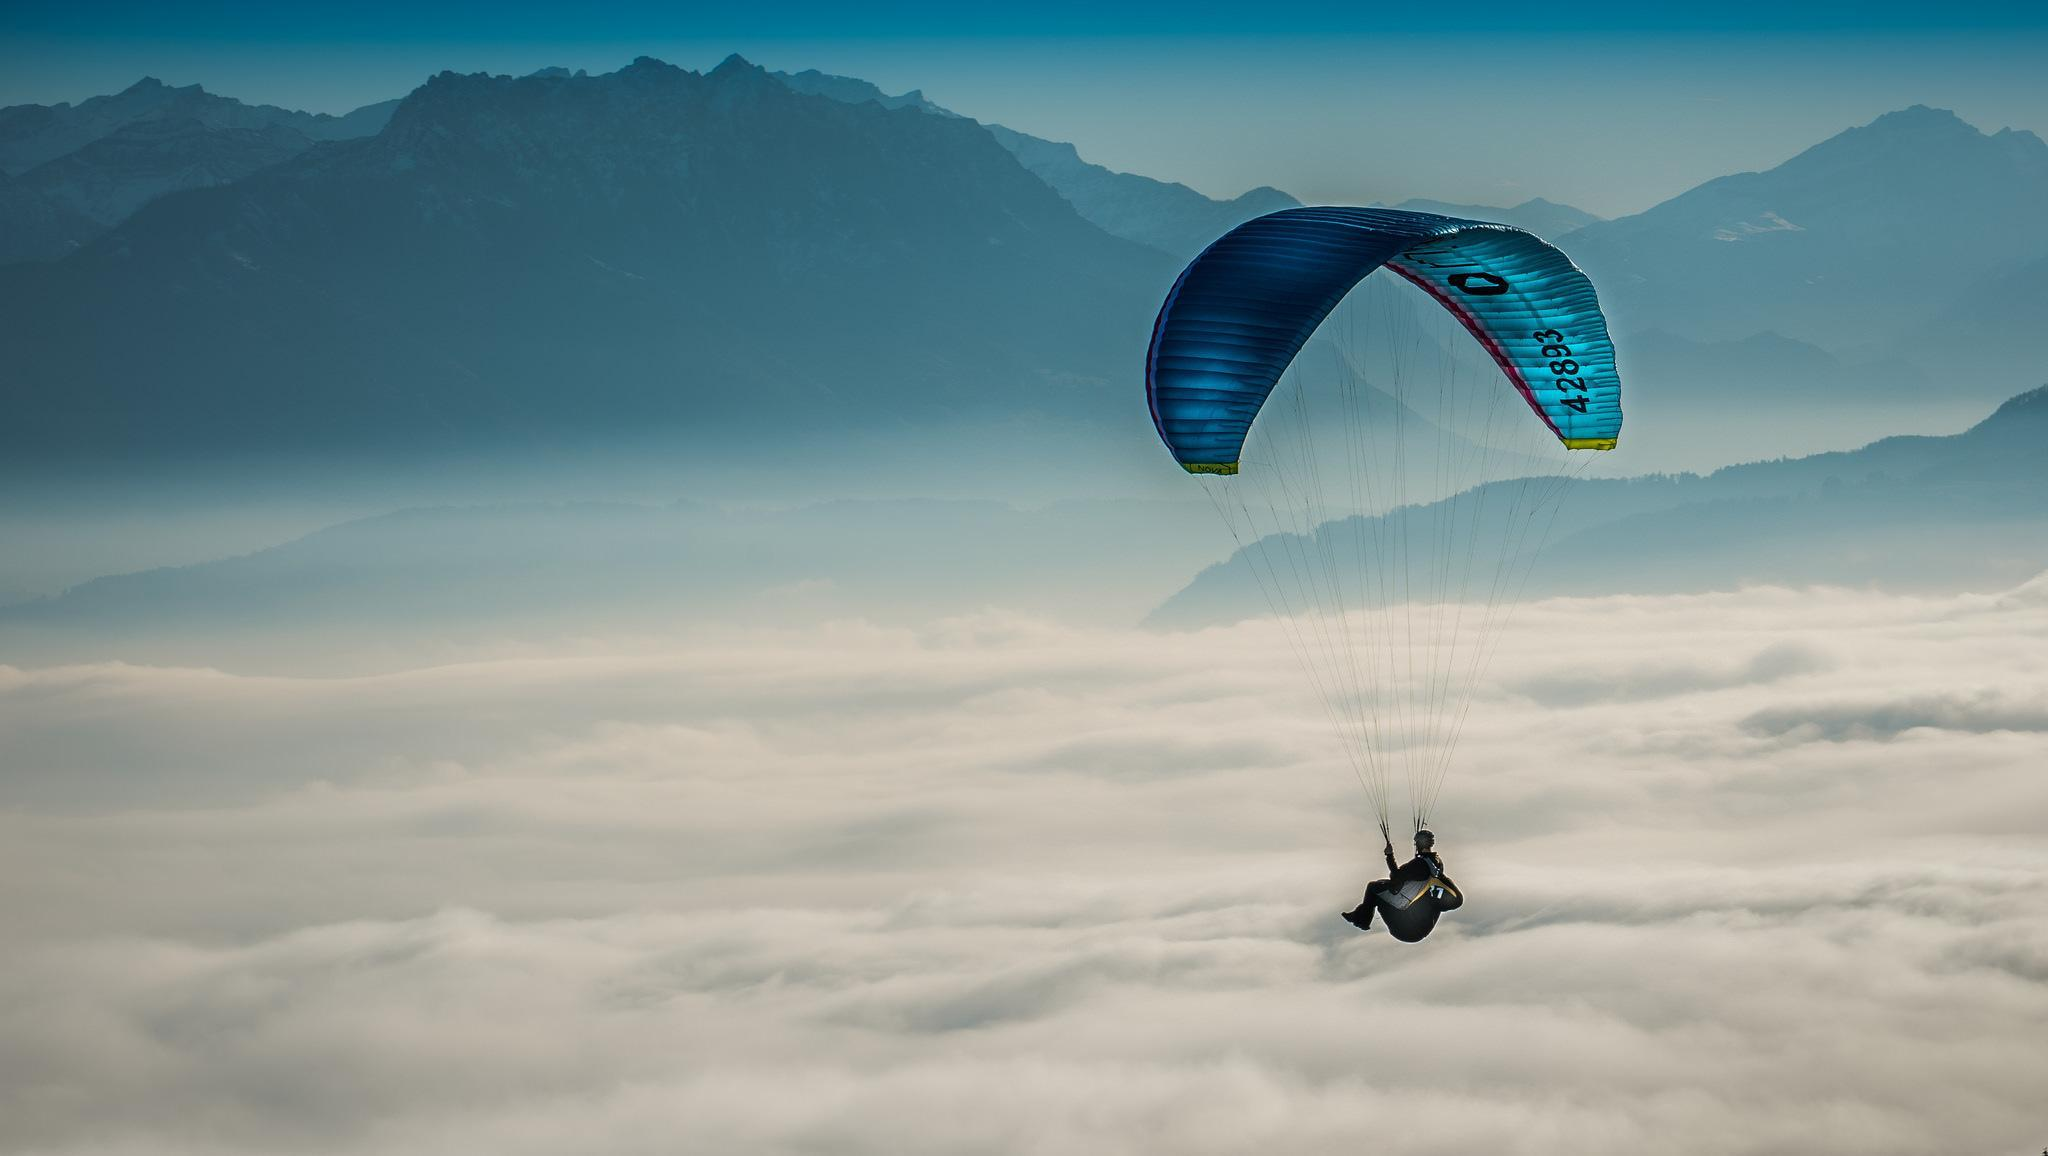 Paragliding Wallpapers Images Photos Pictures Backgrounds